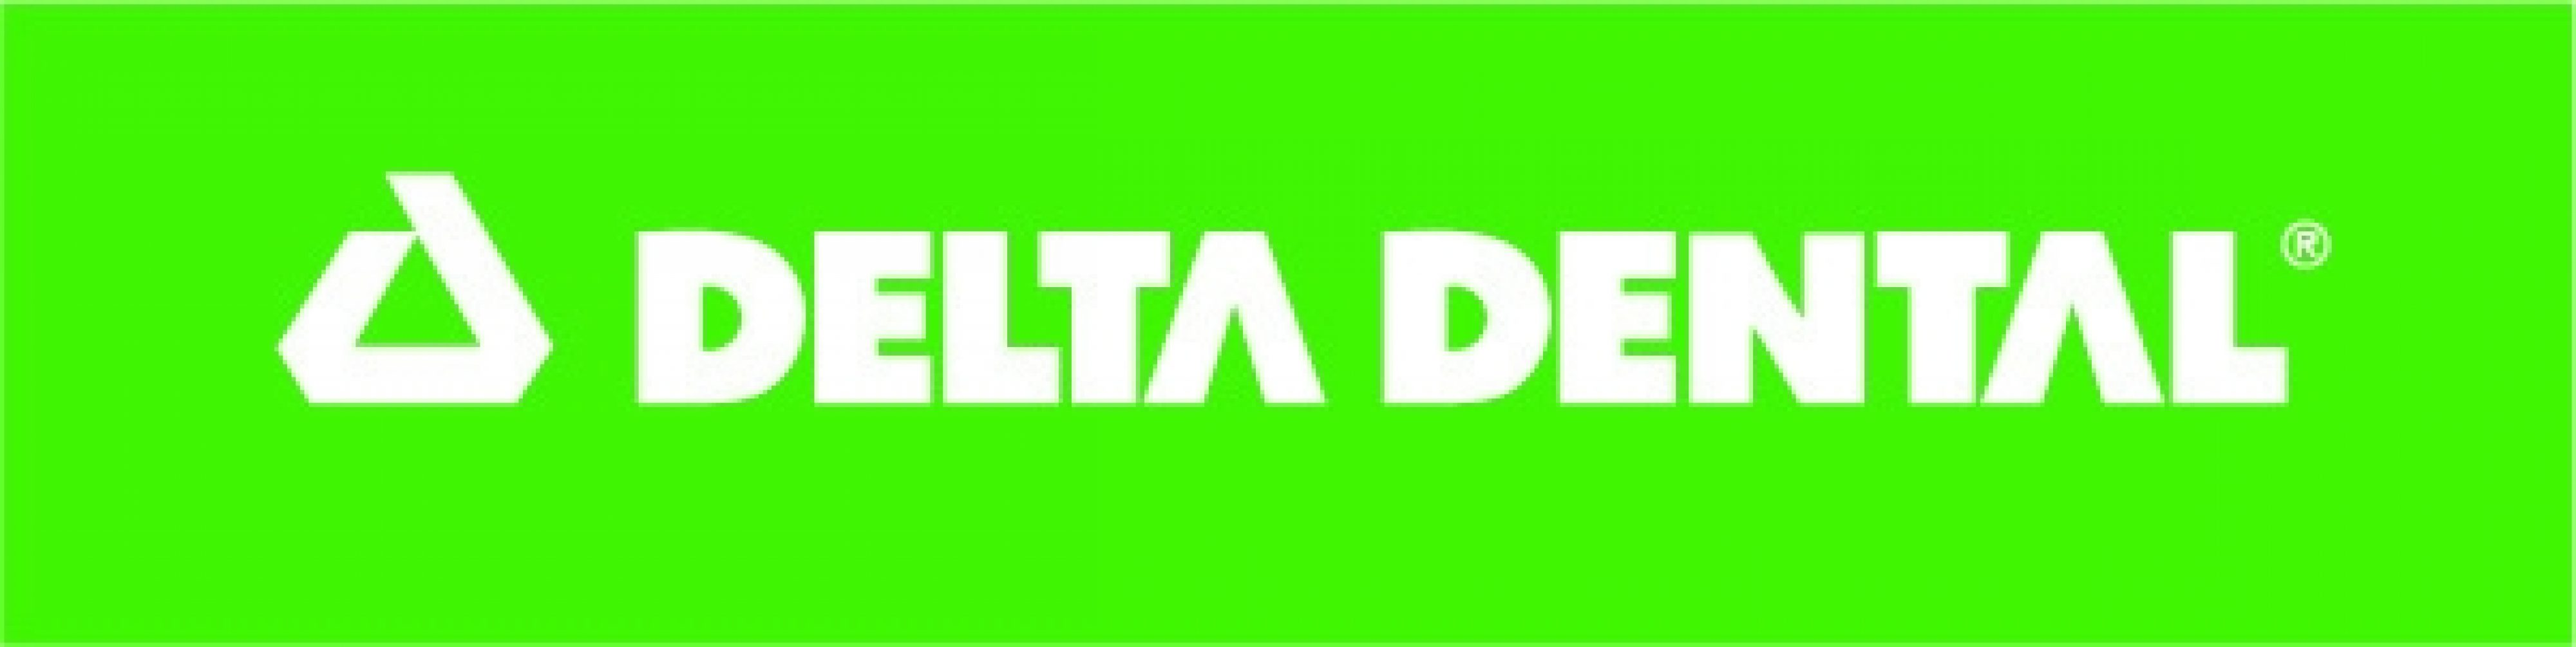 Delta Dental Logo 361 Green